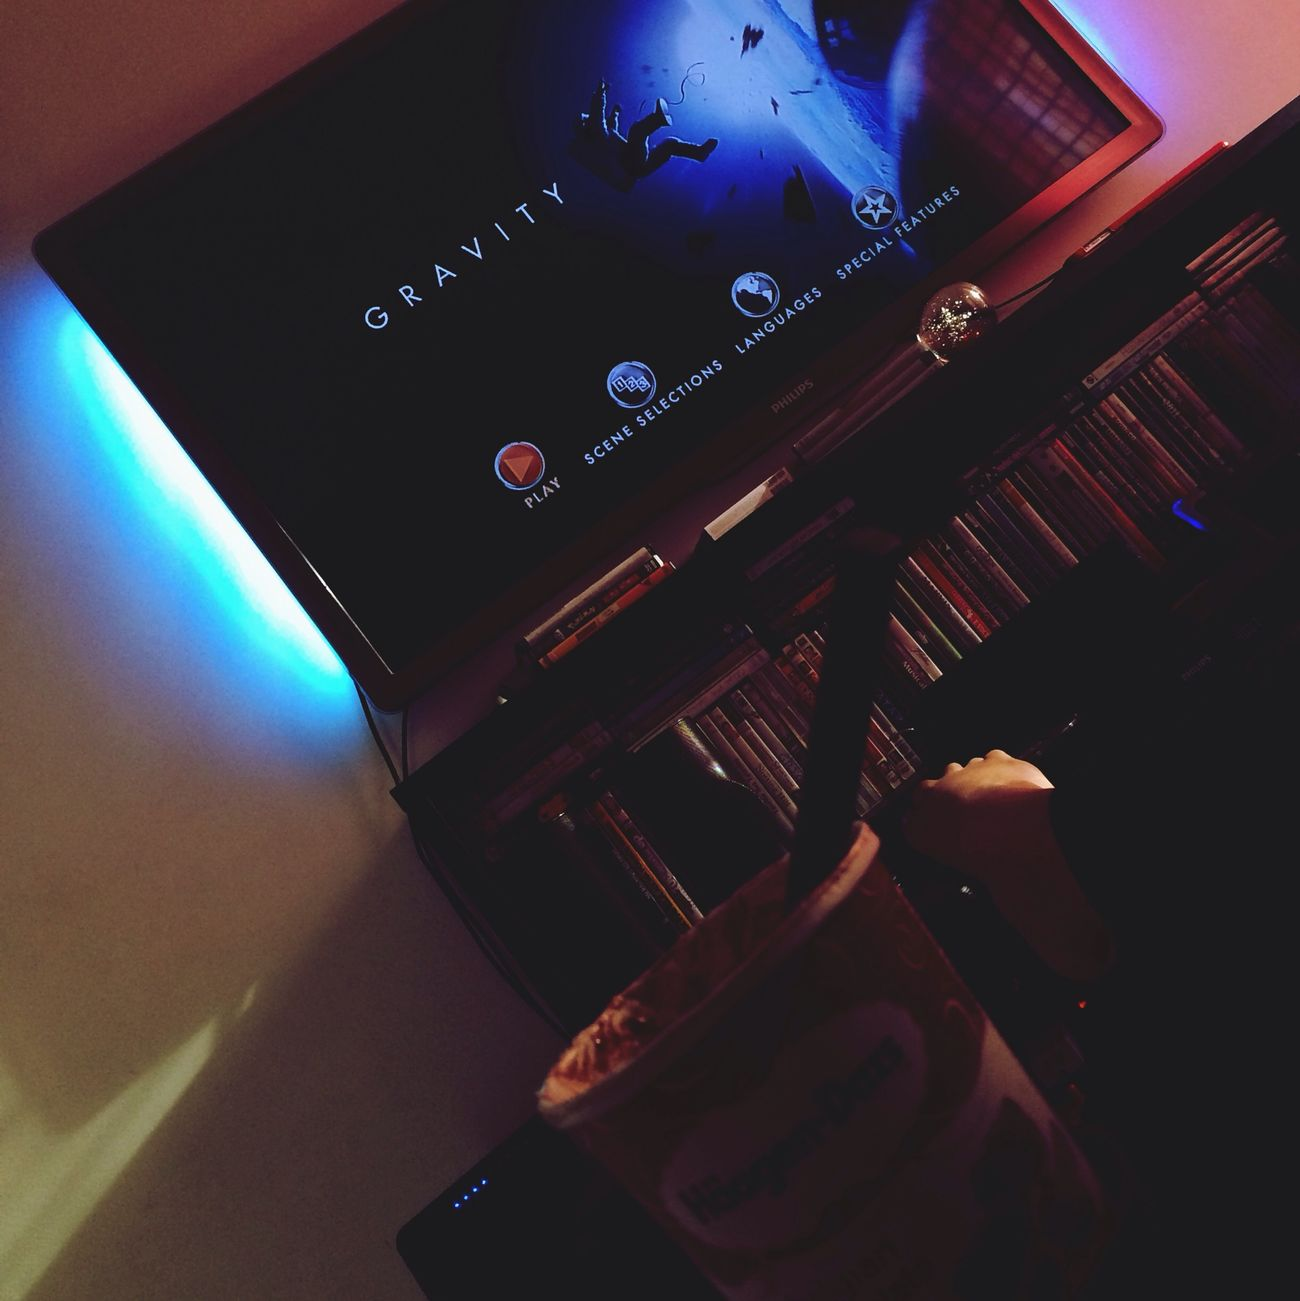 Pré-Oscar. A M O. Watching A Movie Sunday Relaxing Movies